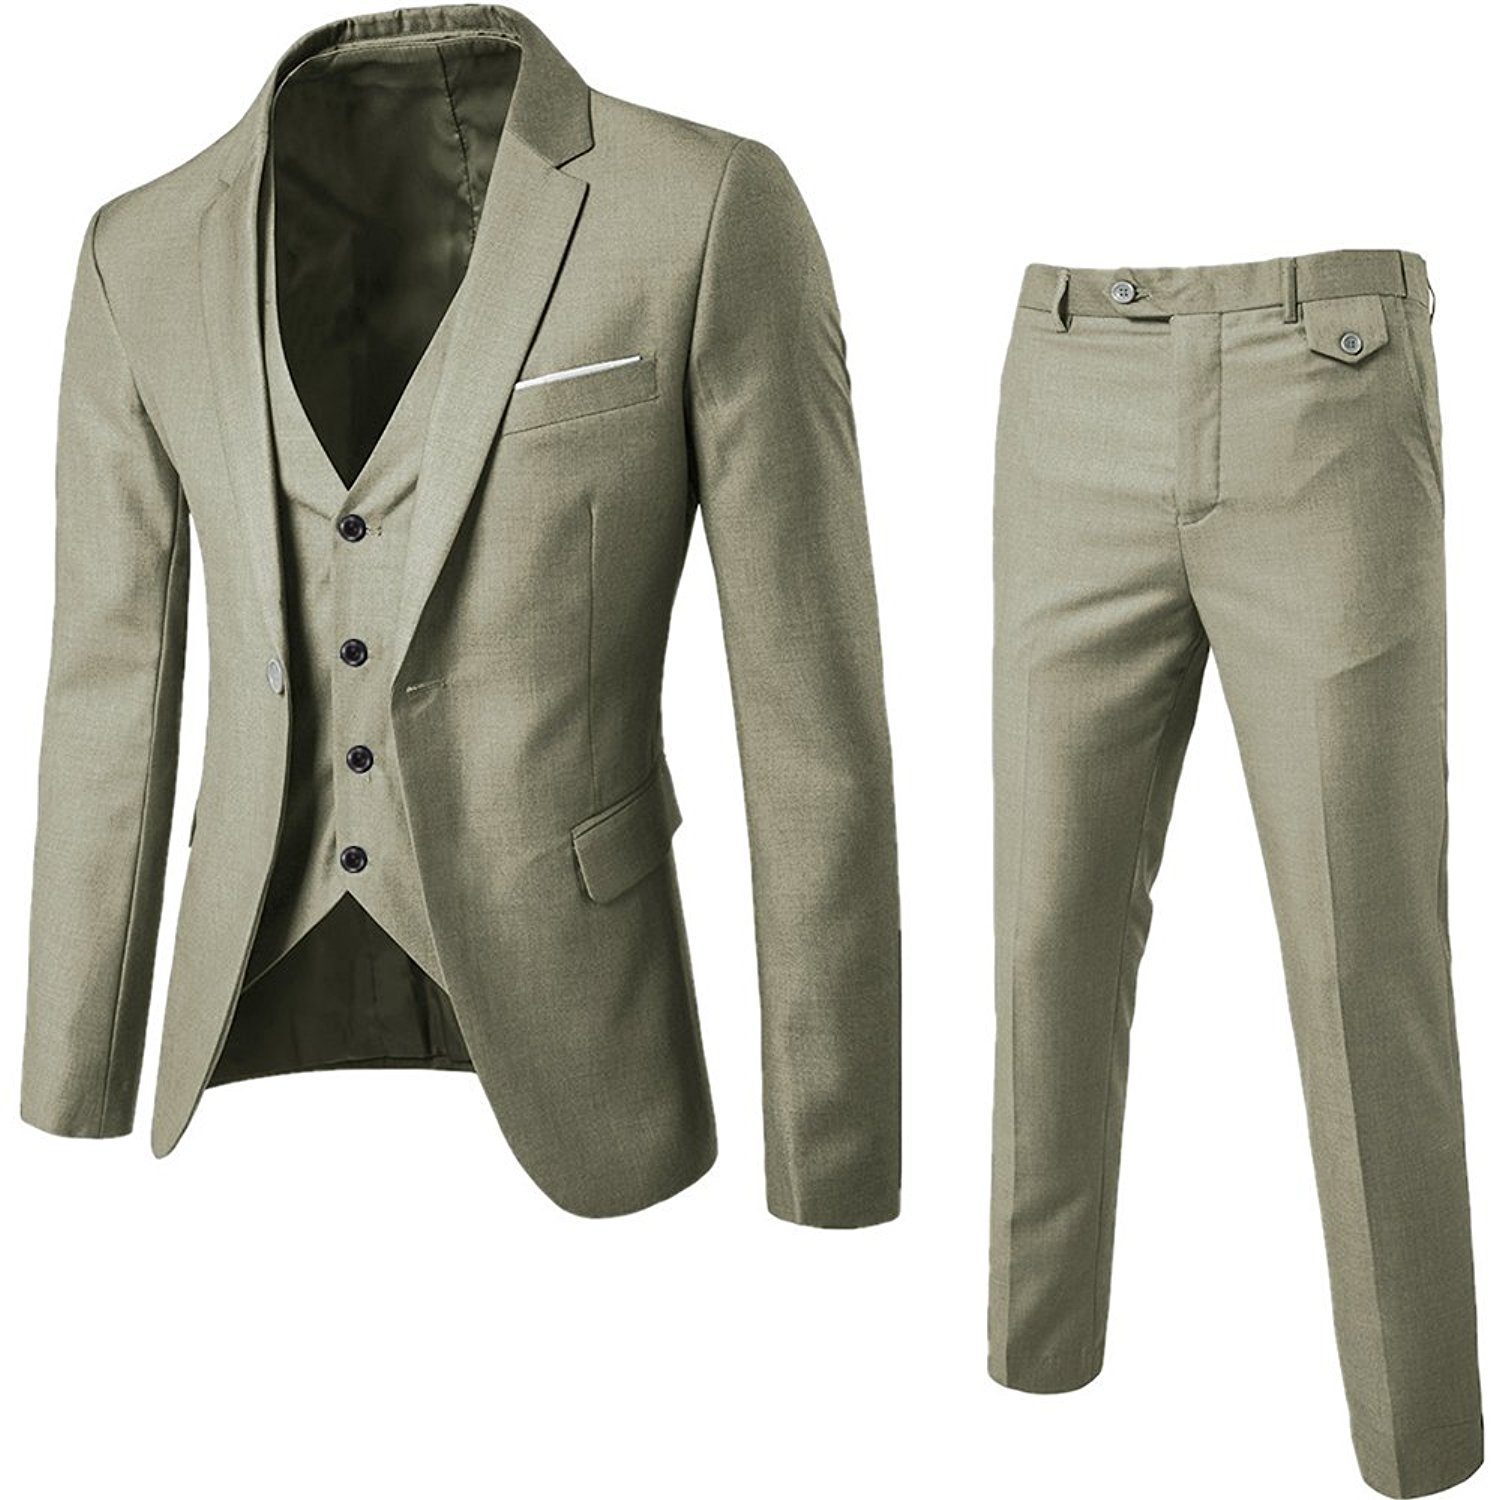 WEEN CHARM Mens Suits Single Breasted One Button Slim Fit 3 Pieces Suit